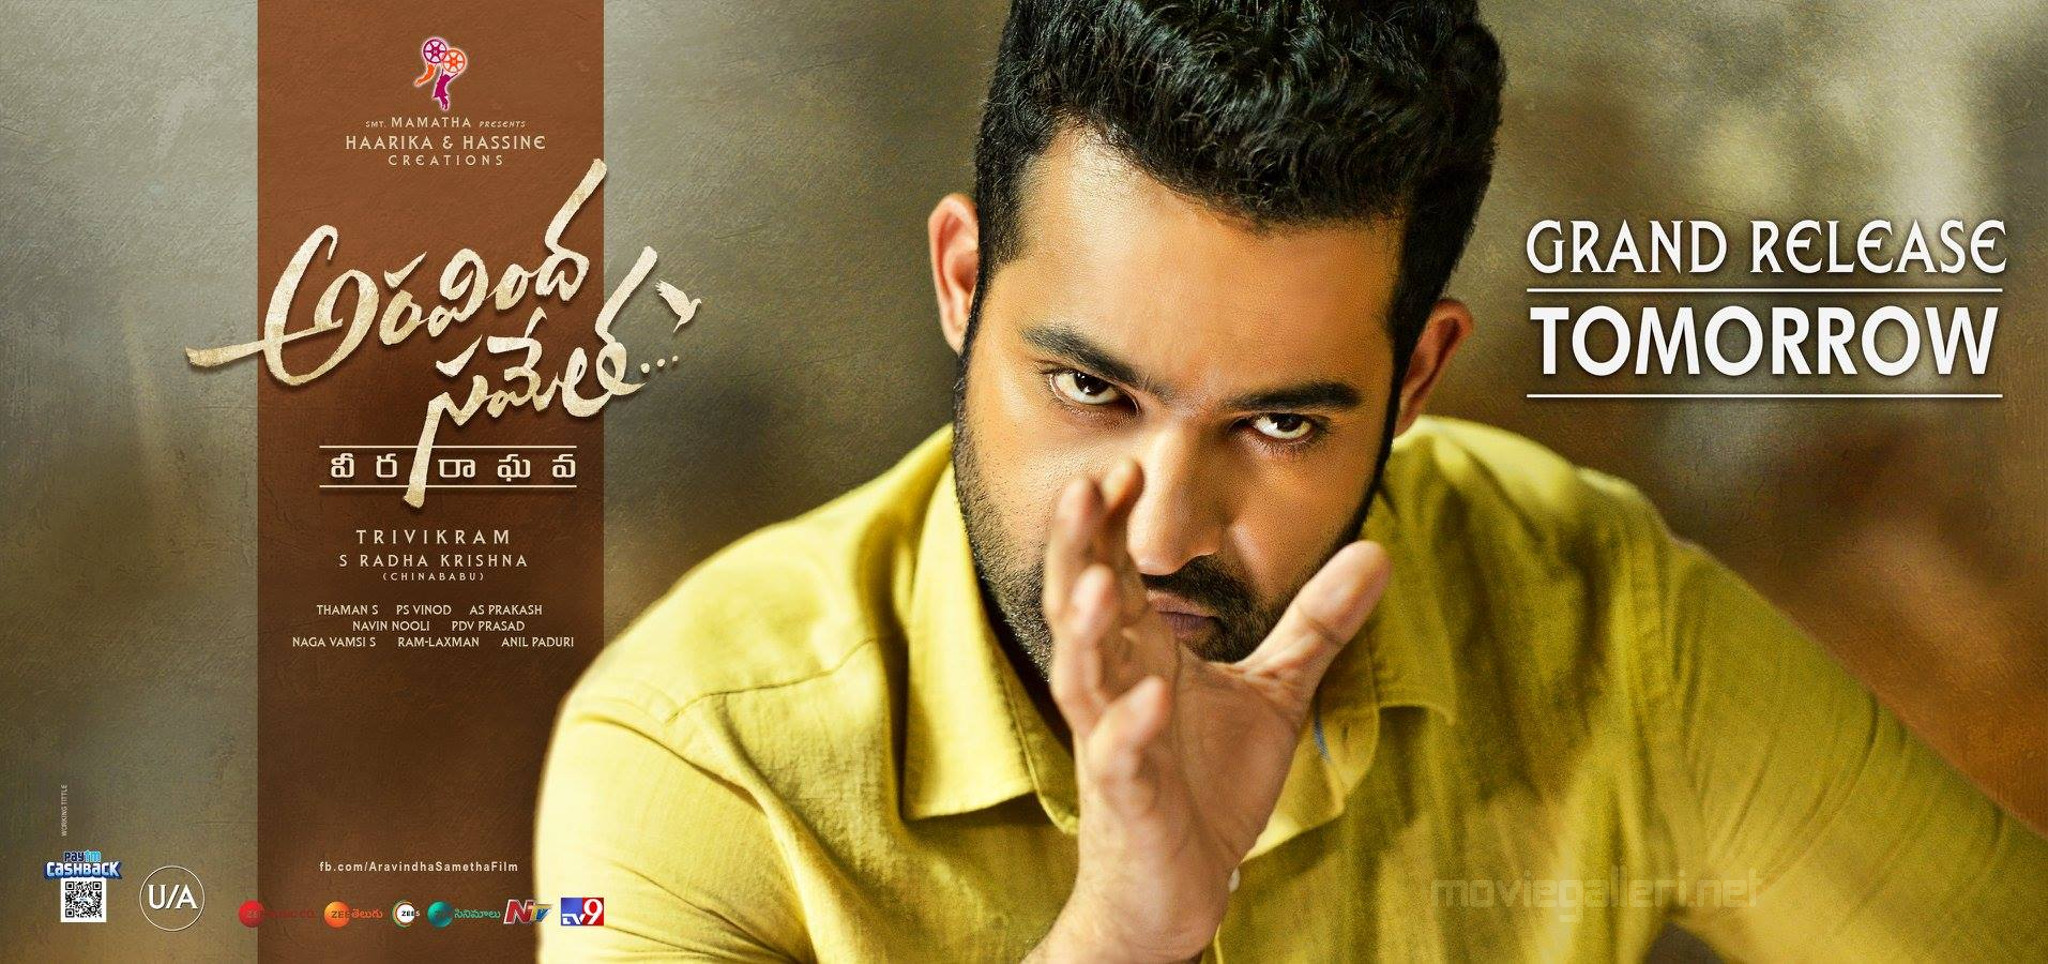 Jr NTR Aravinda Sametha Movie Release Tomorrow Wallpapers HD